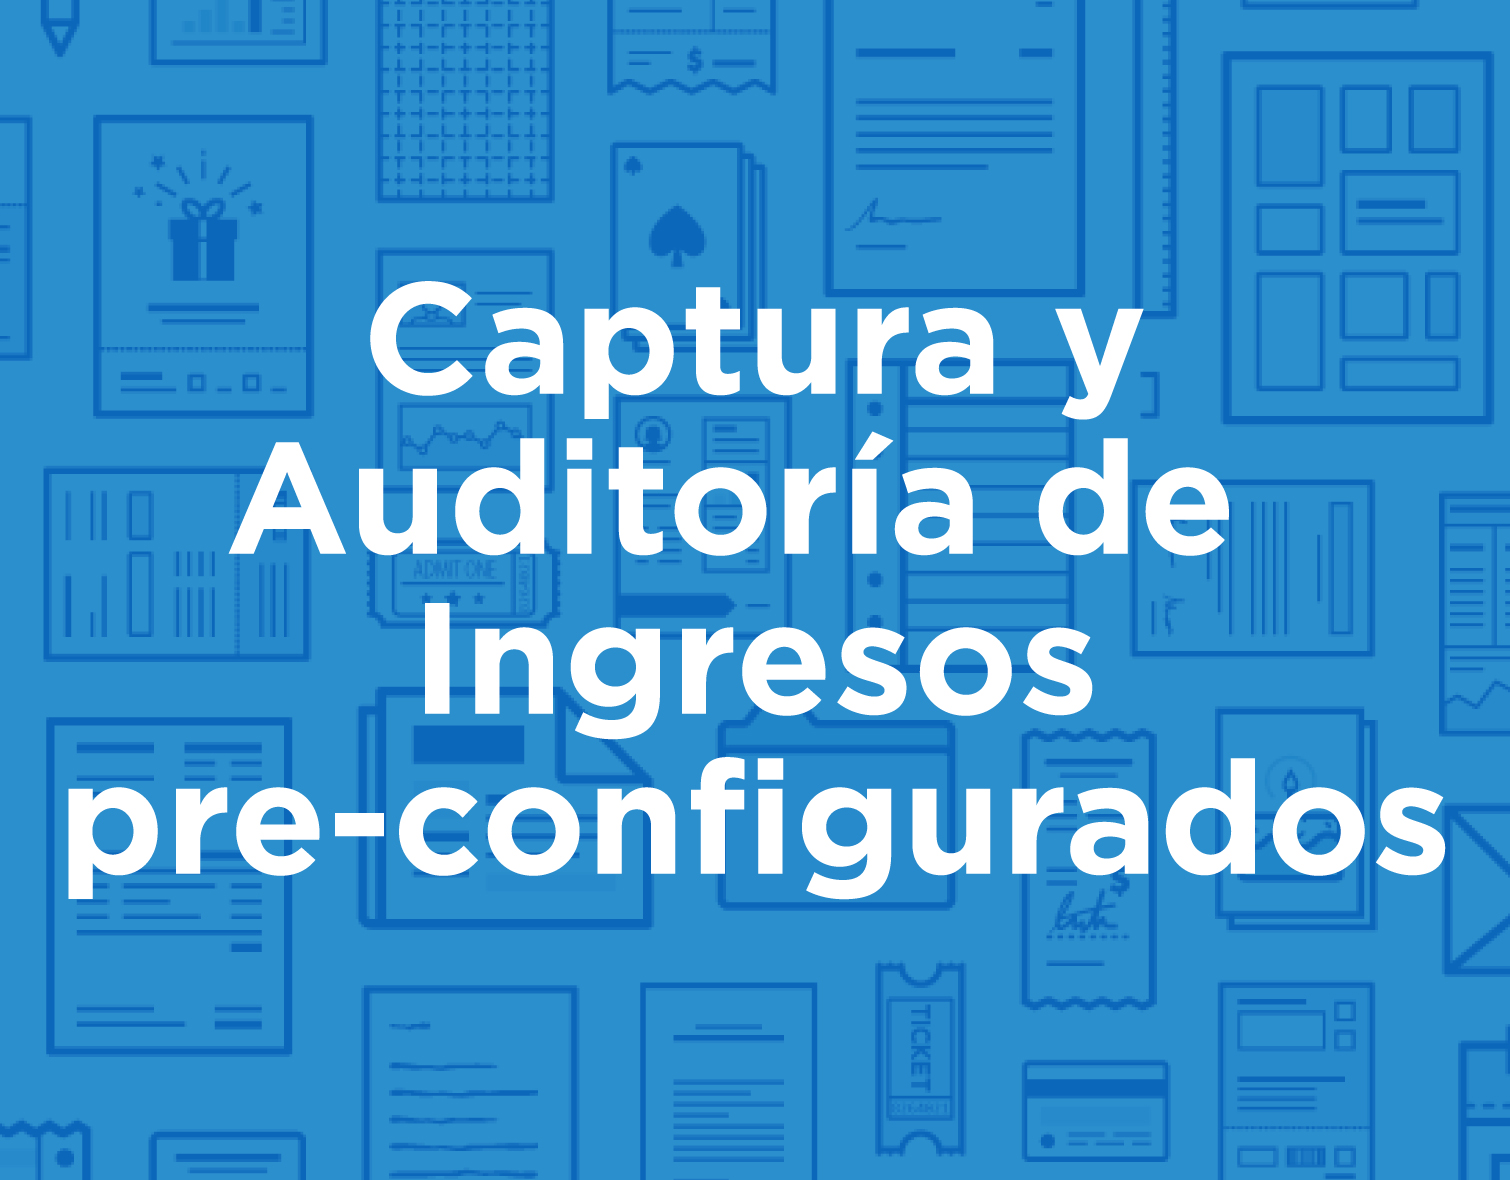 icon_products_spa_Captura-Auditoria-Ingresos-pre-configurado.jpg